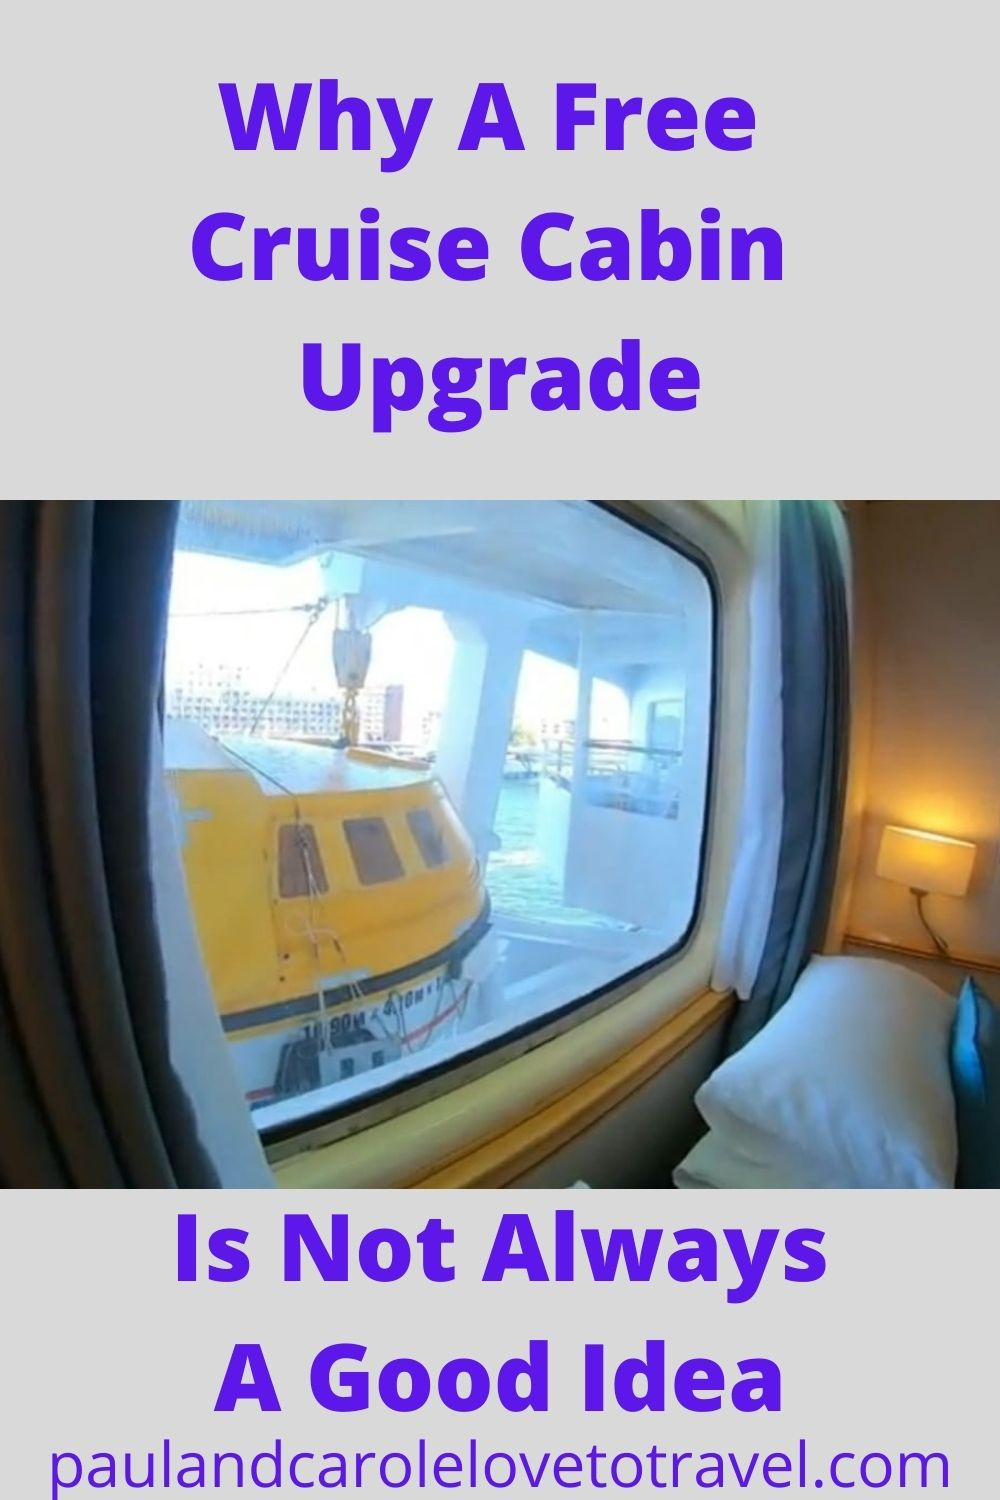 Why a free cabin upgrade is not always a good idea.